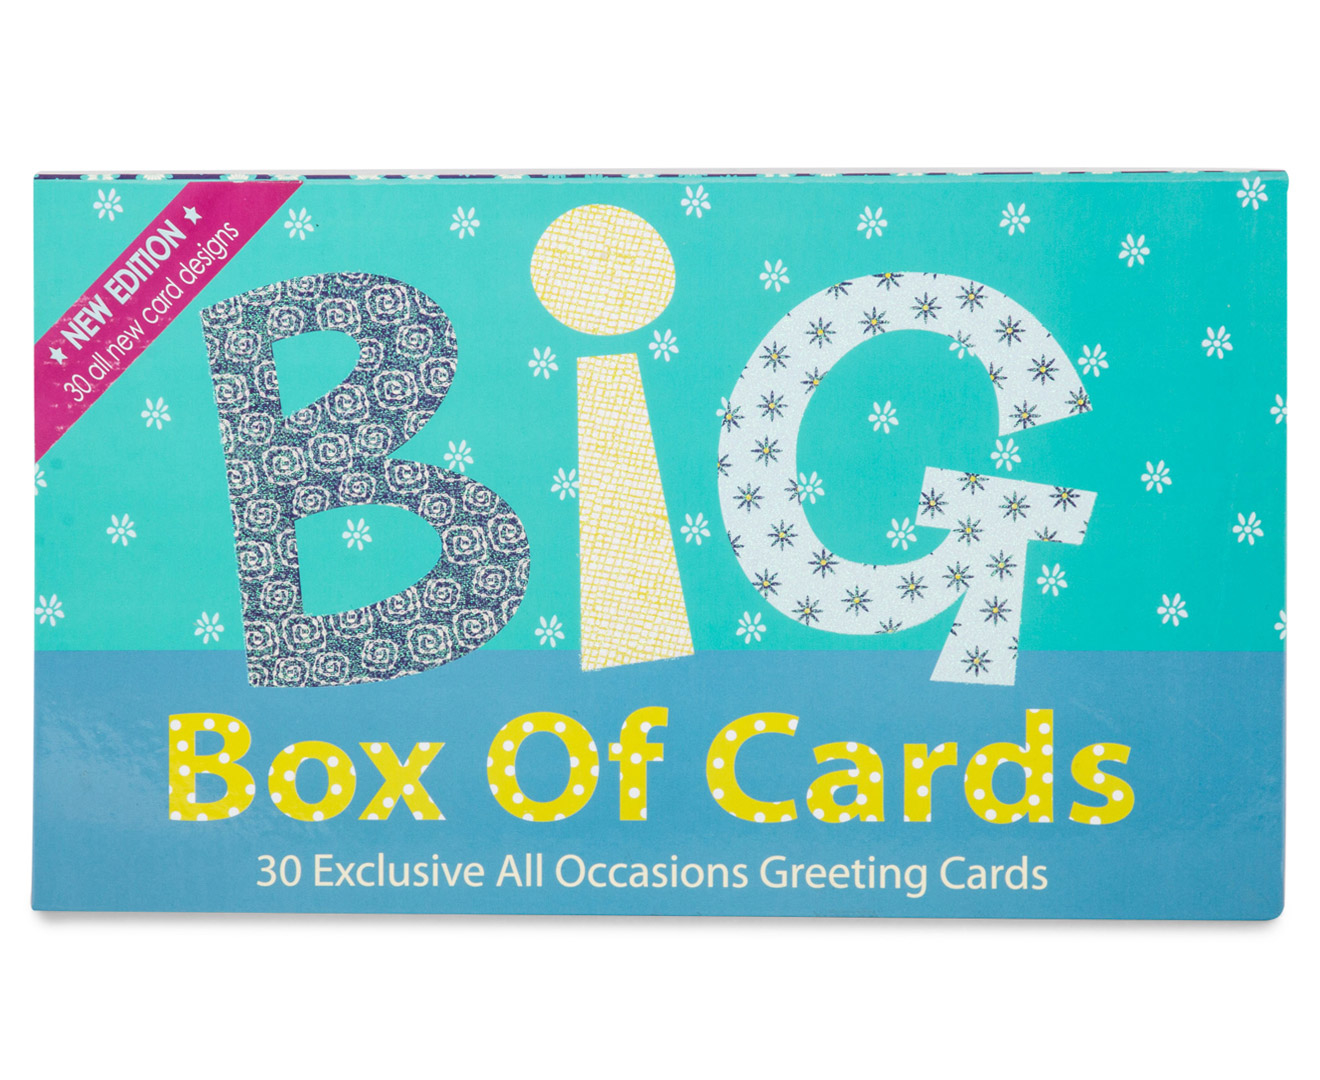 Big Box Of Cards Greeting Cards For All Occasions 30 Pack Catch